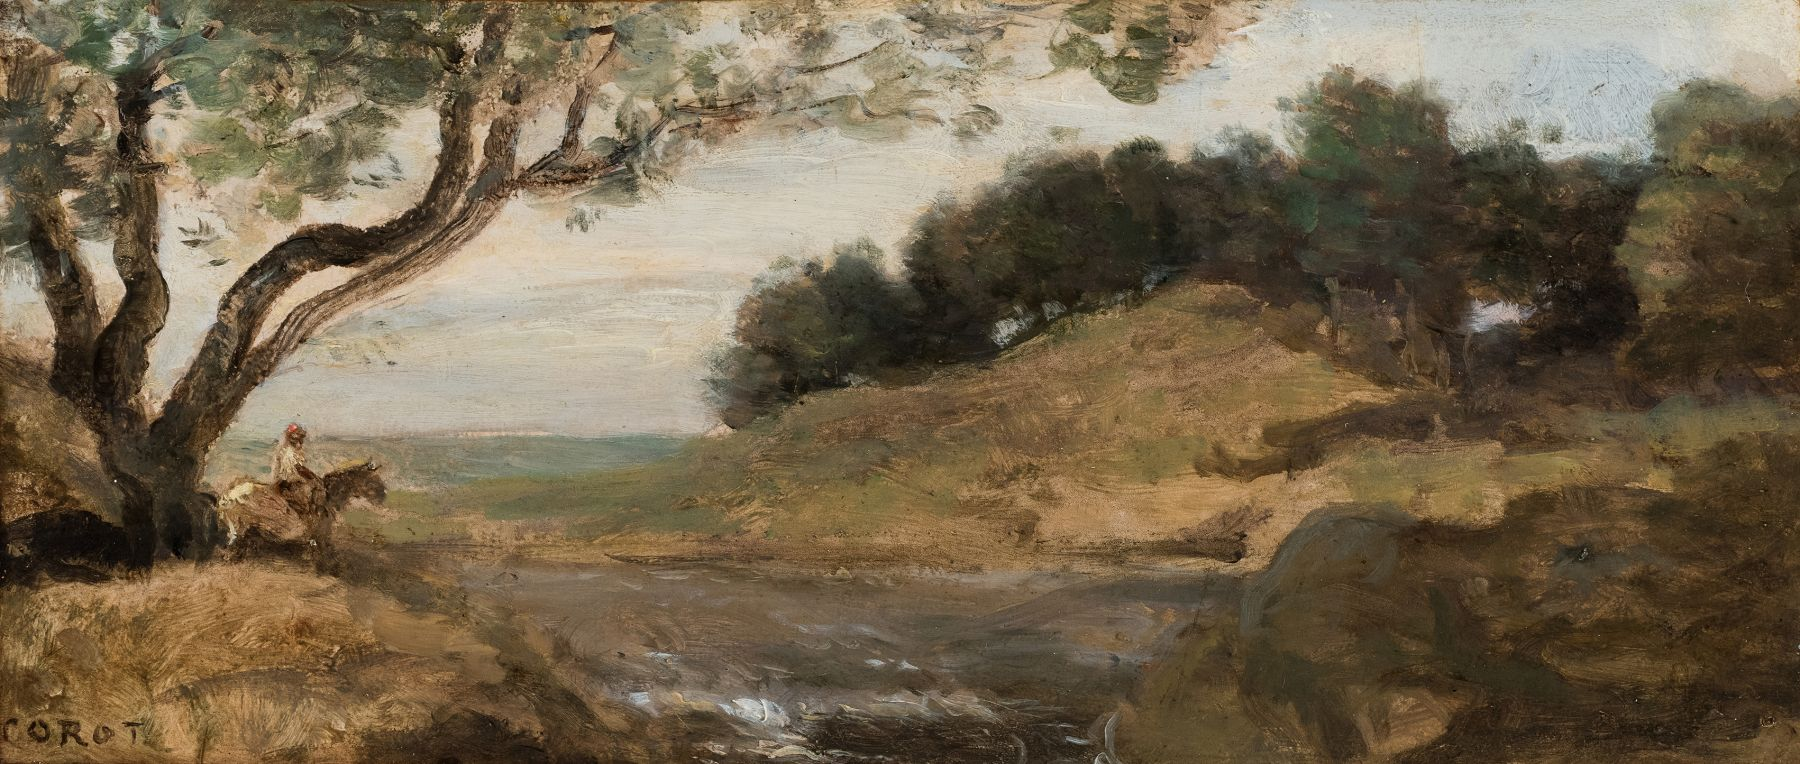 Jean-Baptiste-Camille, Corot Rider Under a Tree, c. 1870-1872, Oil on paper mounted on canvas, 4 7/8 x 11 1/8 inches